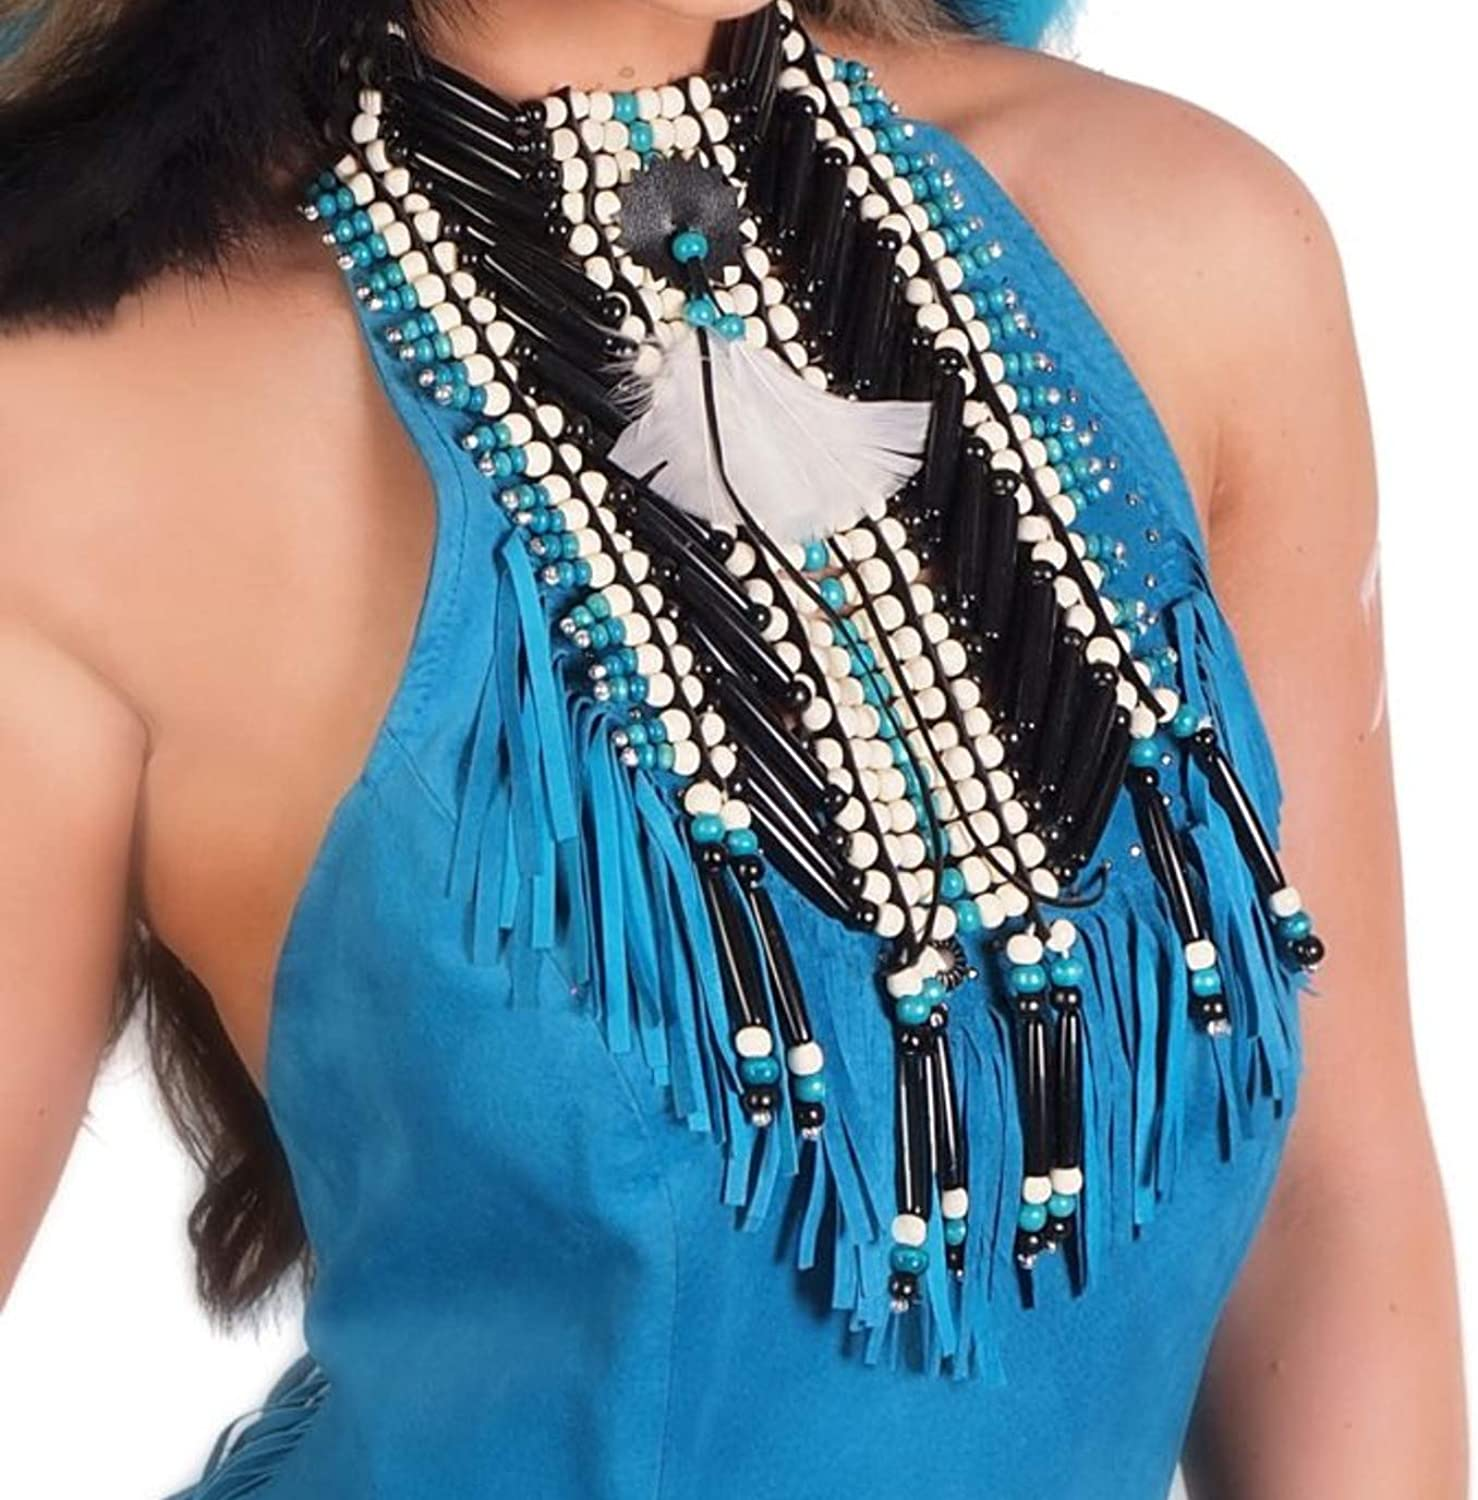 Chest Plate Indian Pipes Breast Plate Choker Bone Style Necklace Native American Costume Southwestern